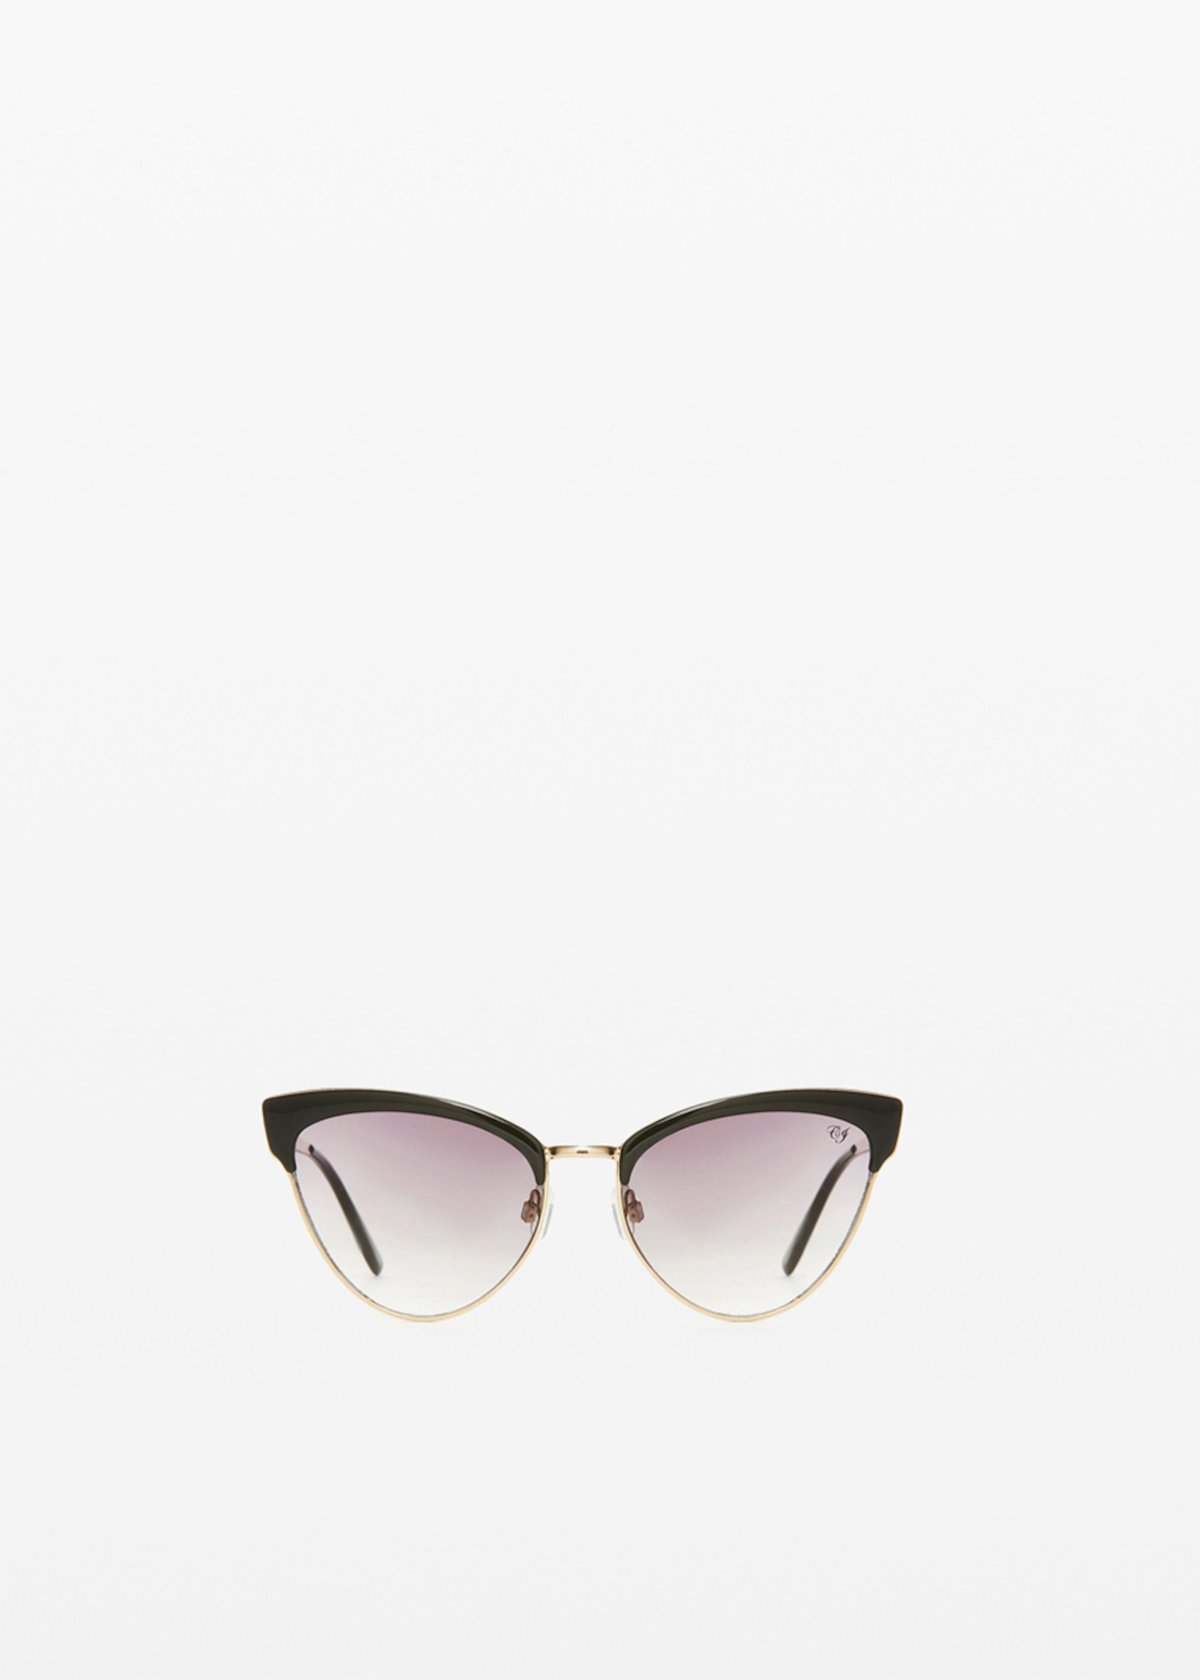 Cat-eye sunglasses SRP 145 with - Black - Woman - Category image